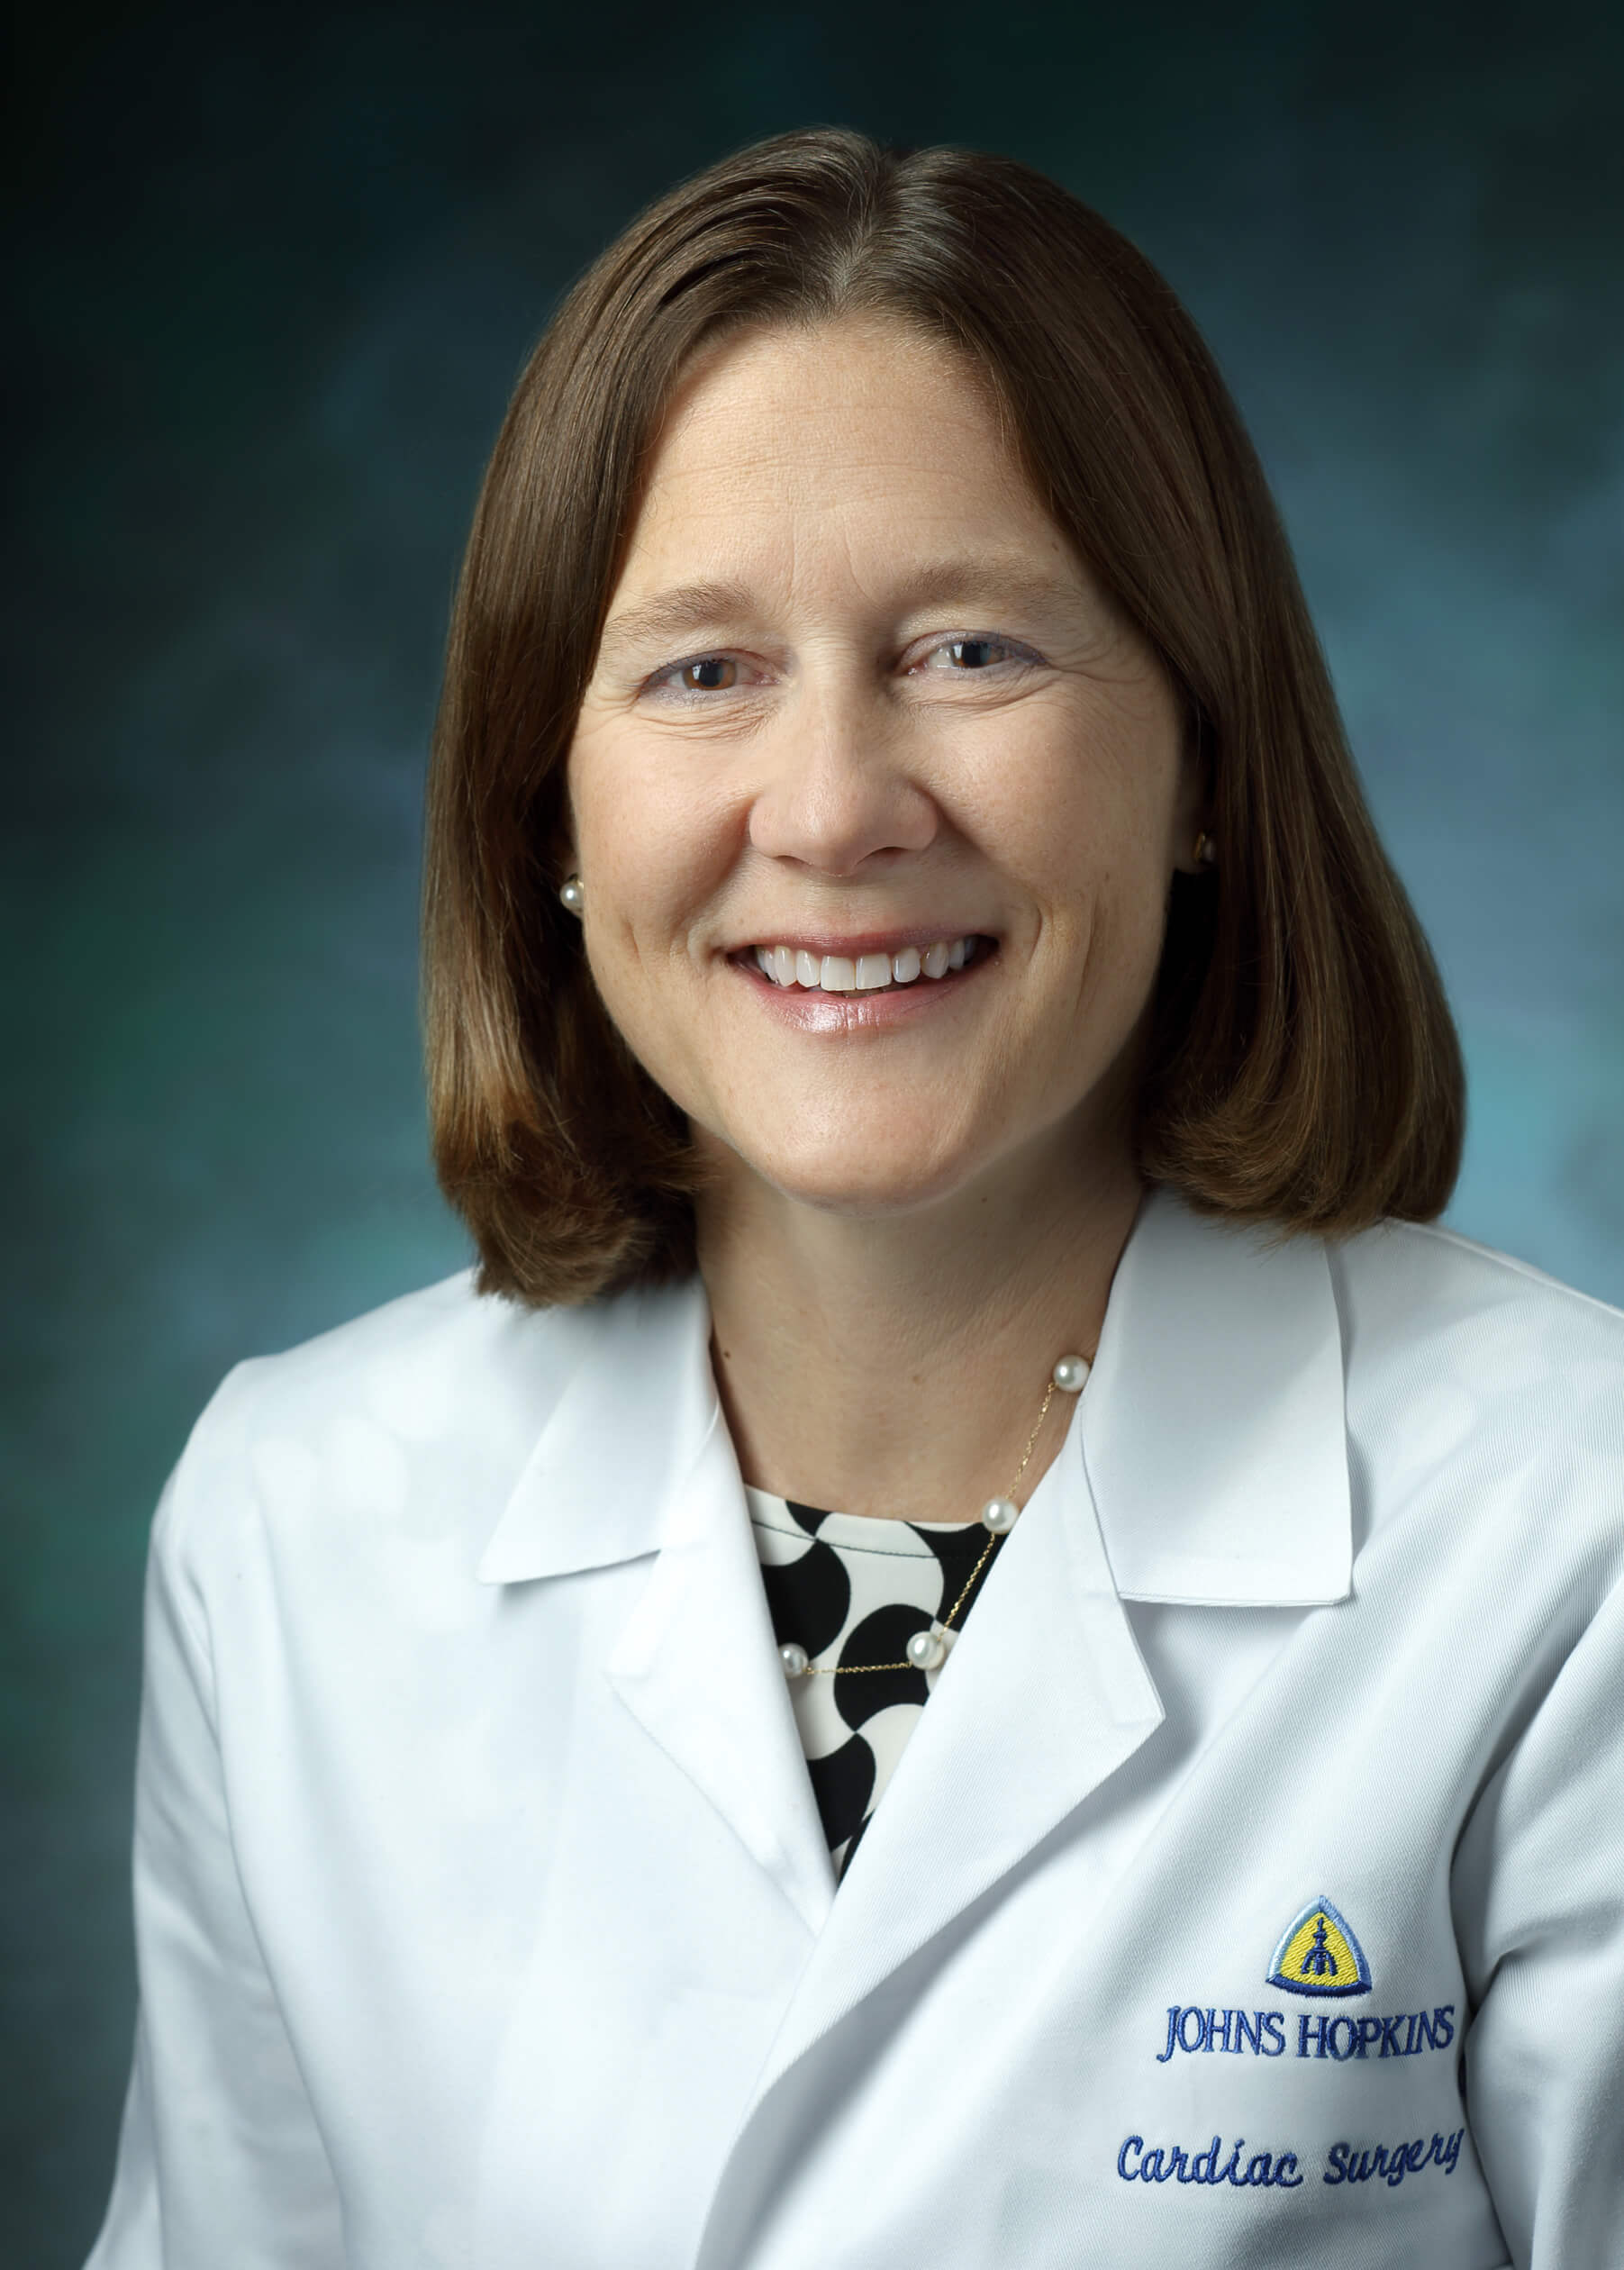 Dr Jennifer Lawton Appointed Chief Of Cardiac Surgery Heart And Vascular Institute